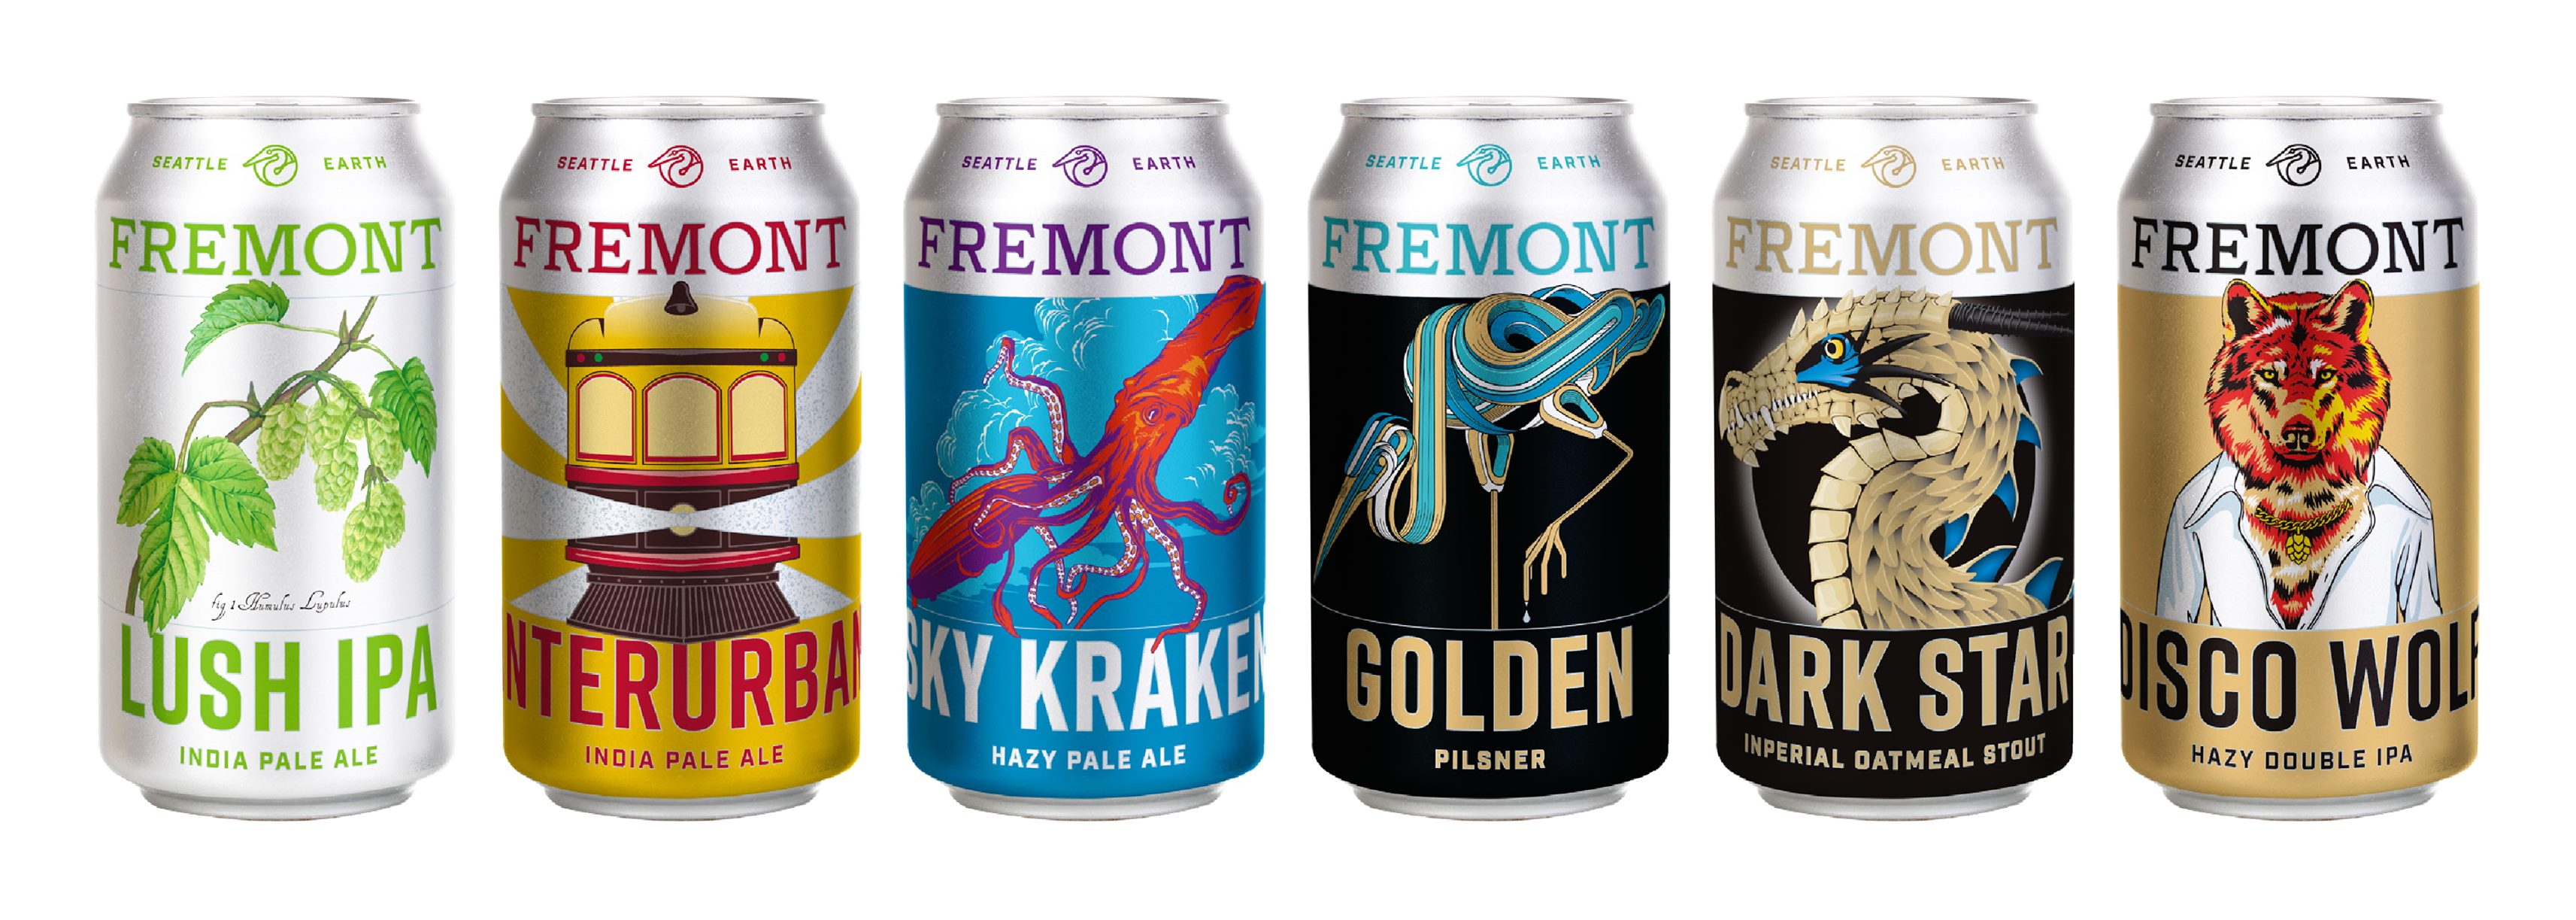 Fremont Brewing Lineup 2021